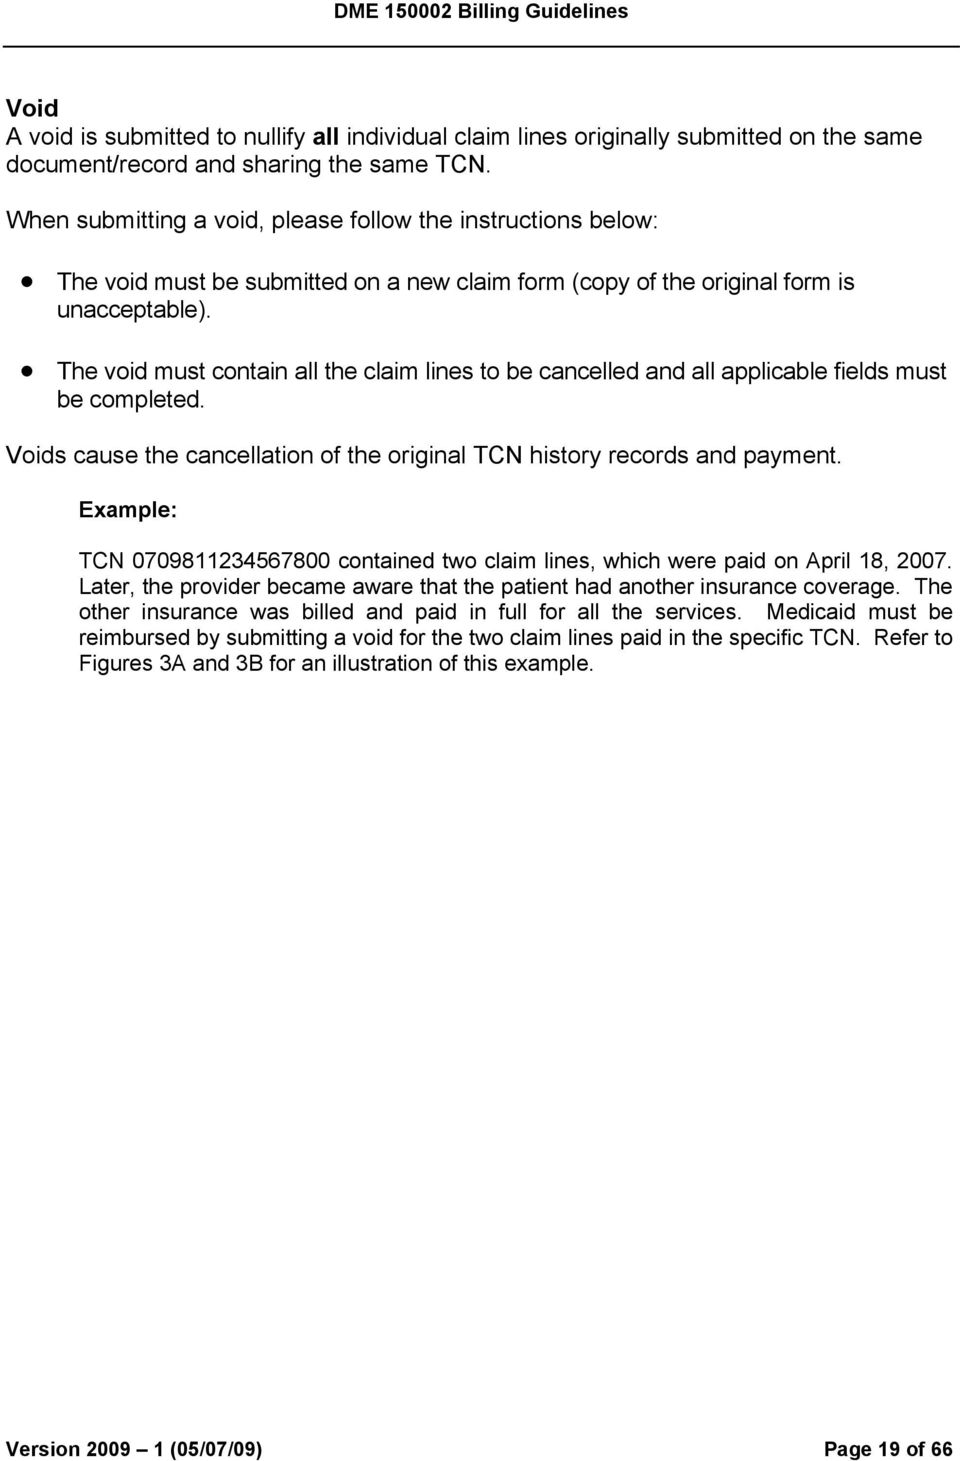 The void must contain all the claim lines to be cancelled and all applicable fields must be completed. Voids cause the cancellation of the original TCN history records and payment.